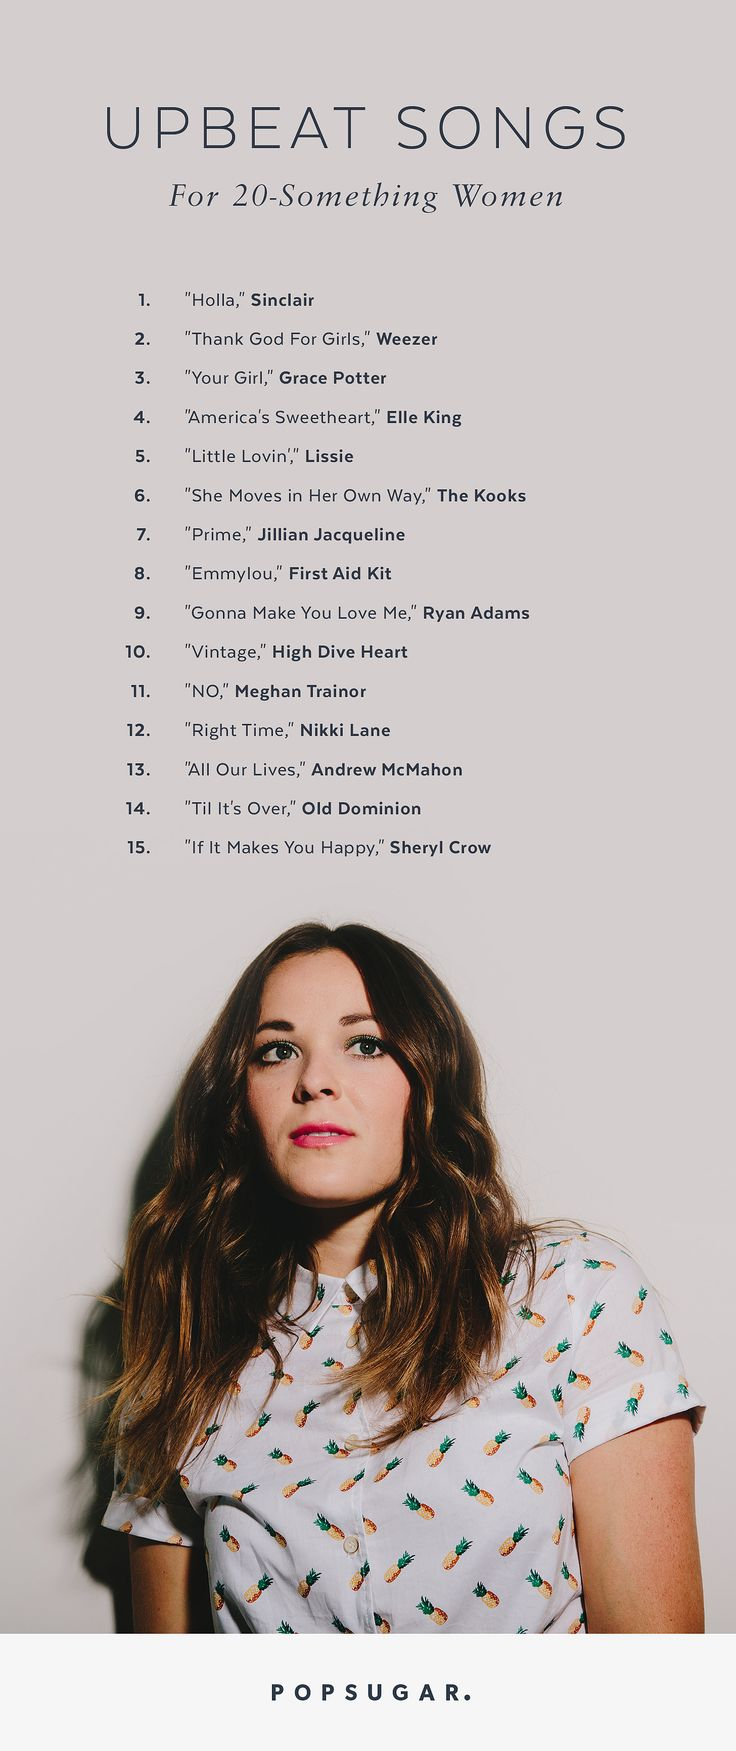 Songs For 20-Something Women to get pumped up for Summer!